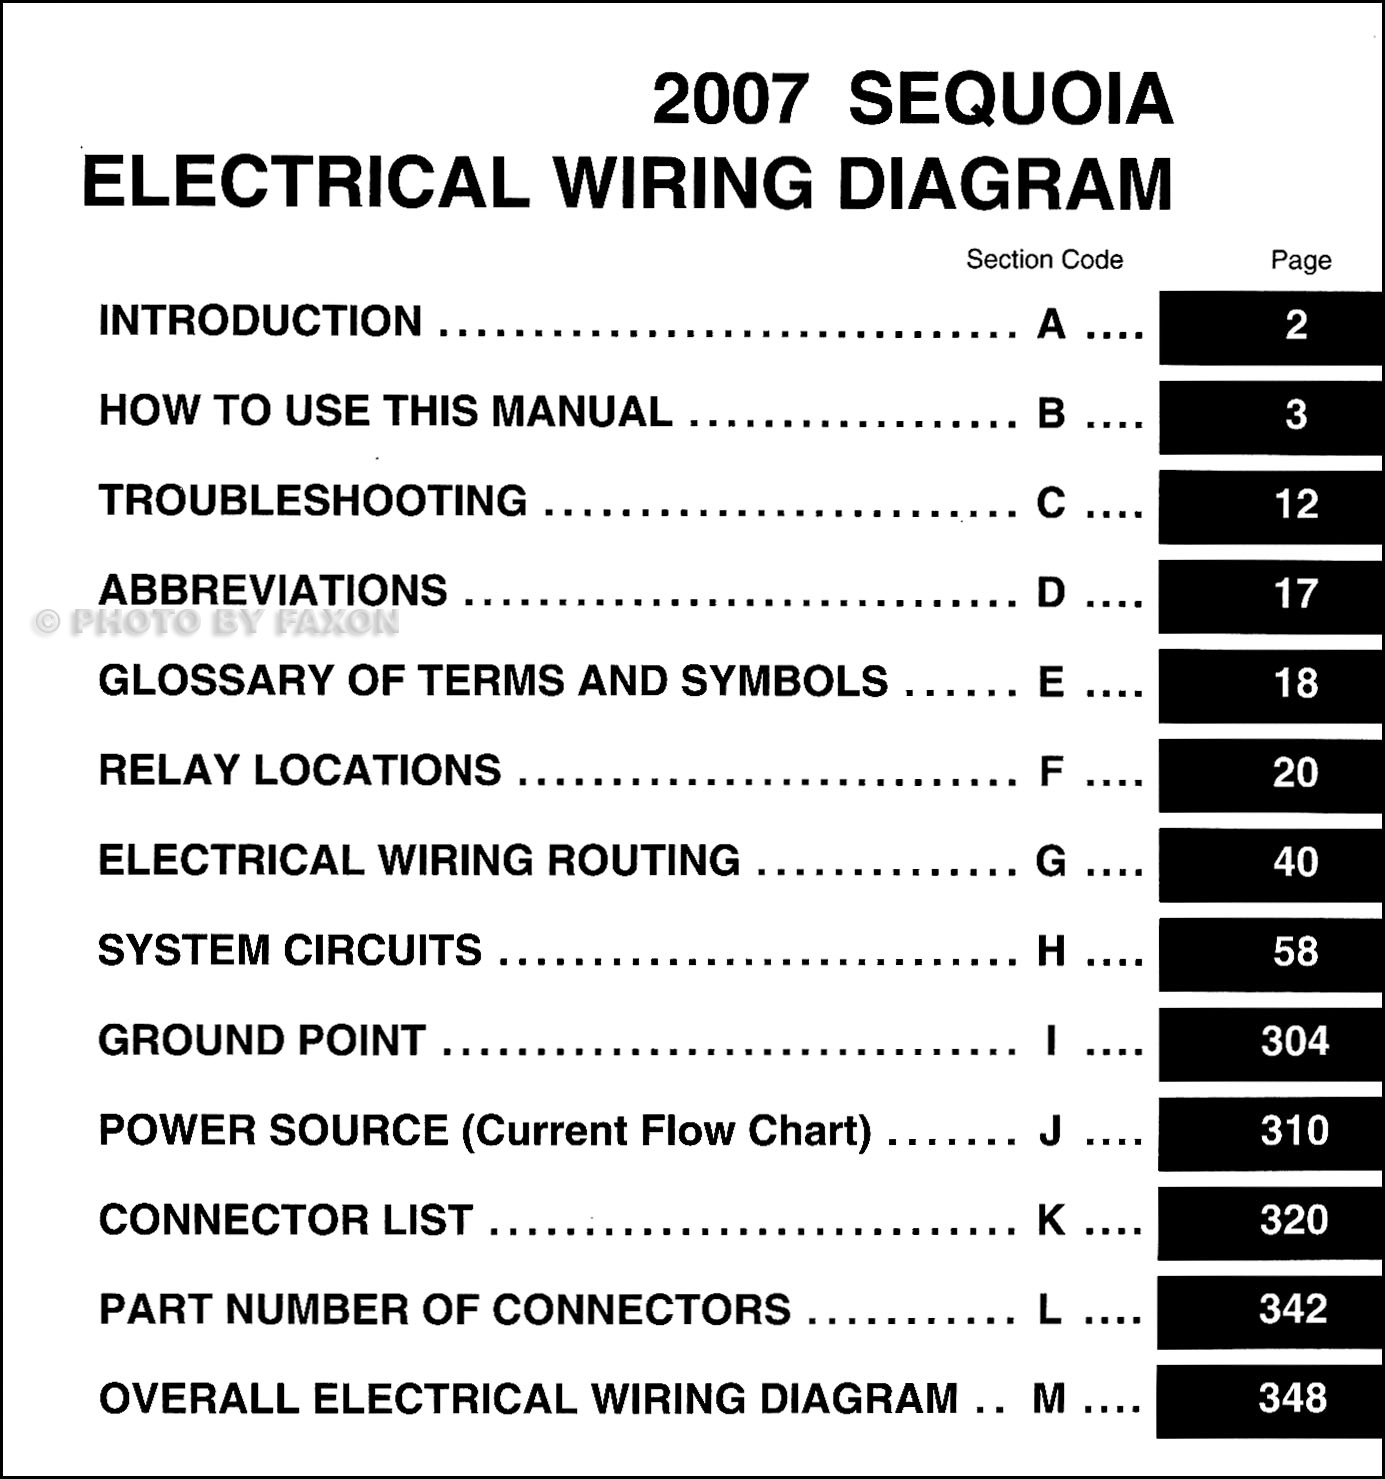 2007 toyota sequoia wiring diagram manual original 1999 toyota camry wiring diagram 2007 toyota sequoia wiring diagram manual original · table of contents